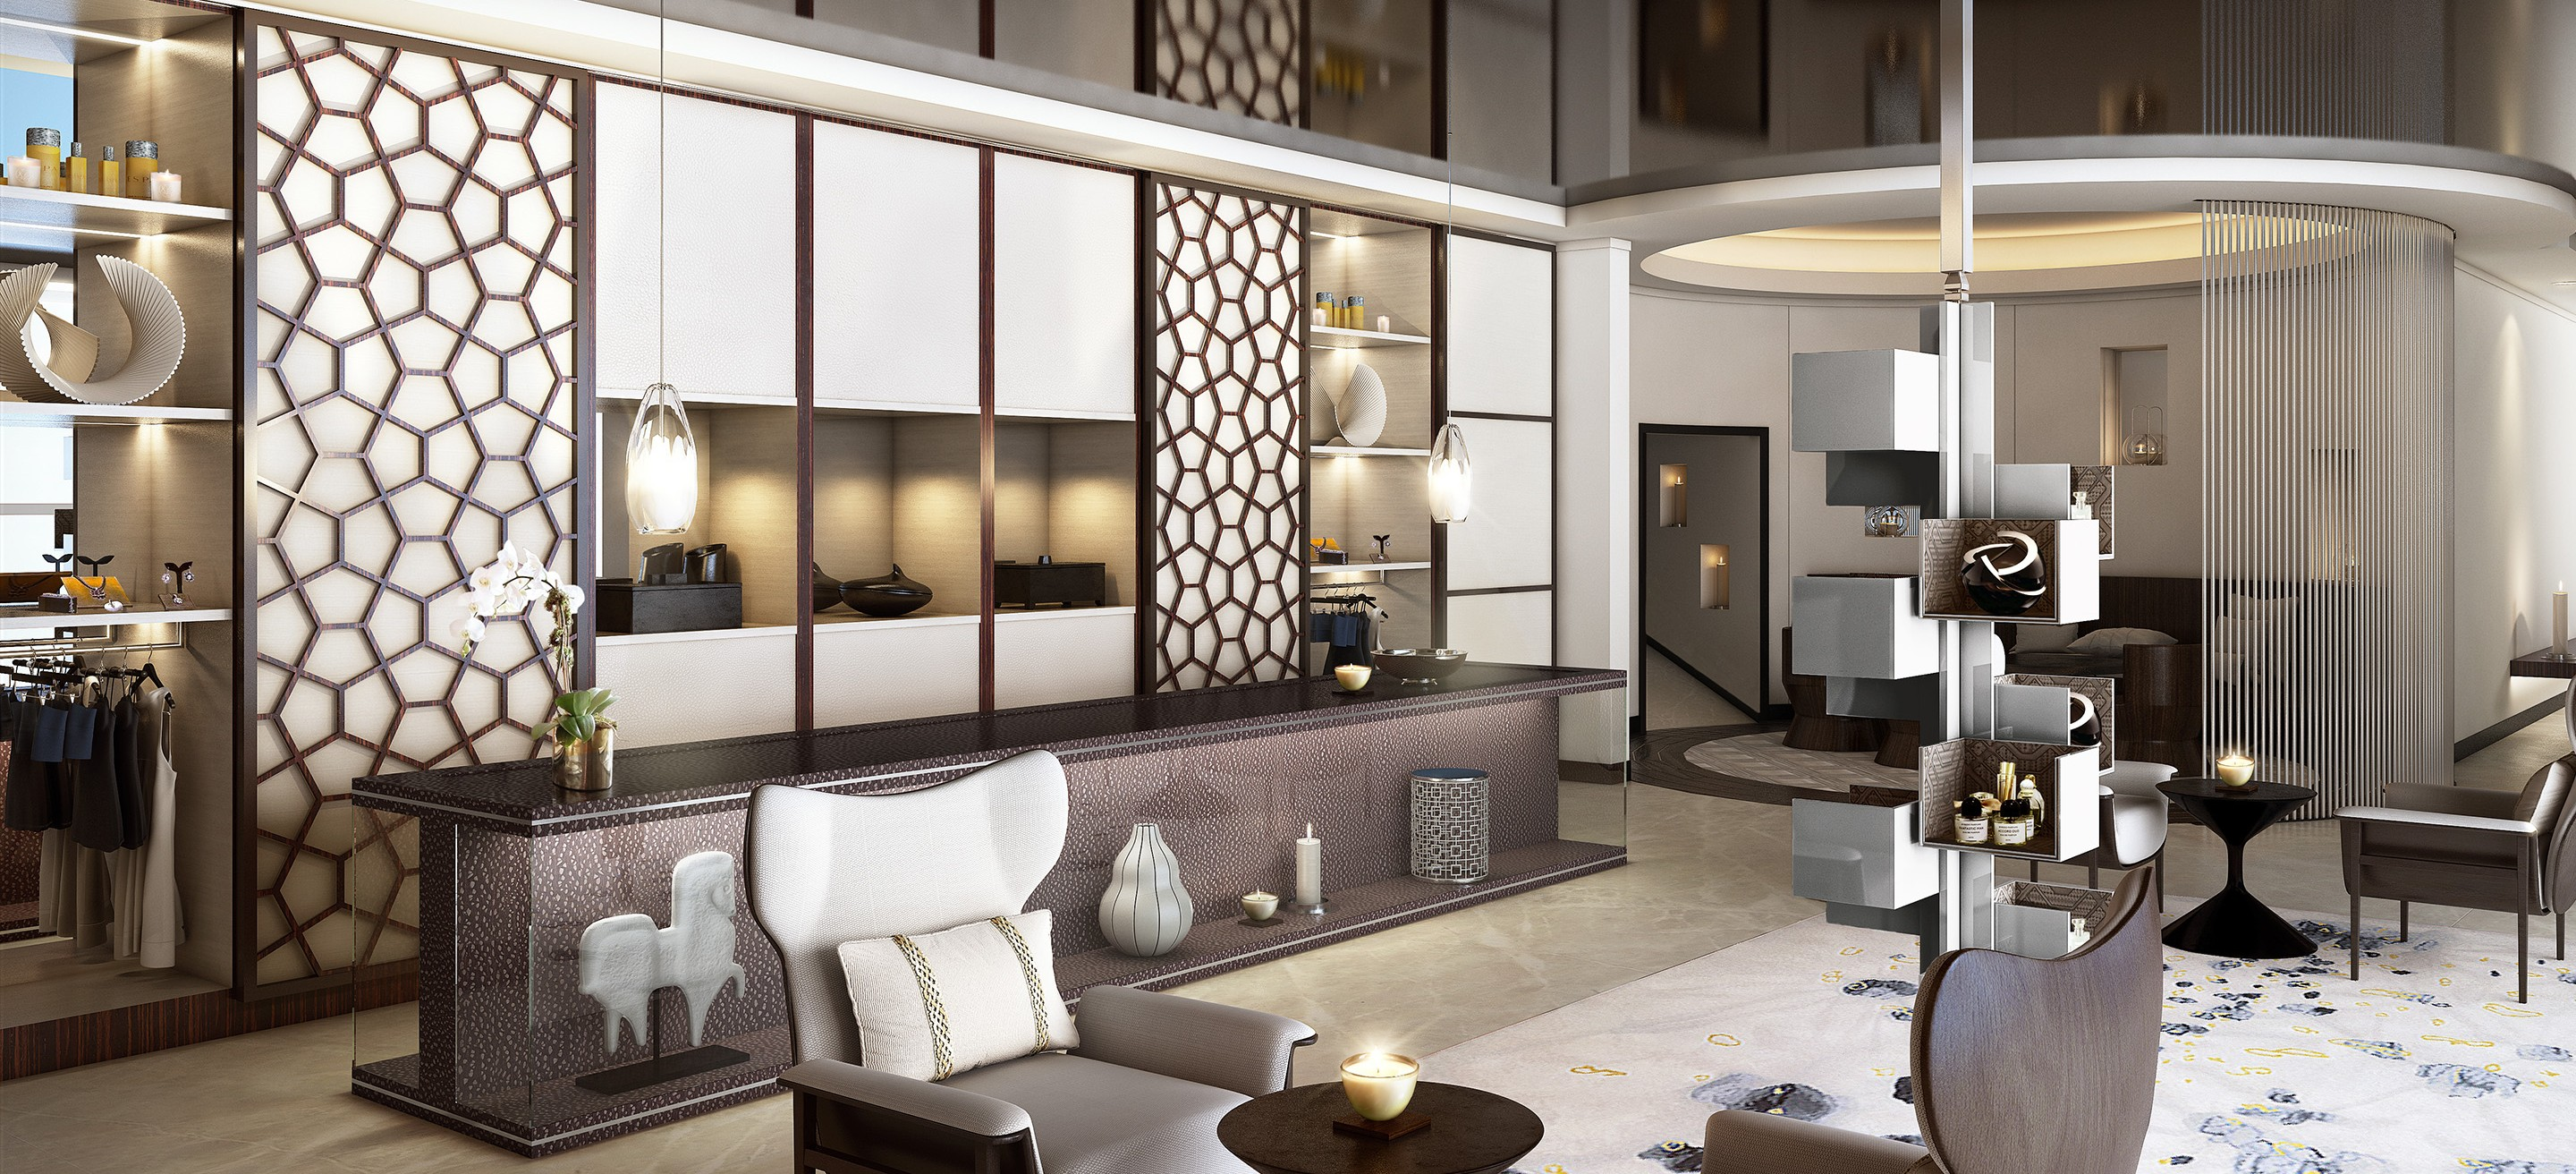 Hotel Interior Design Luxury Hotel Qatar The Gettys Group